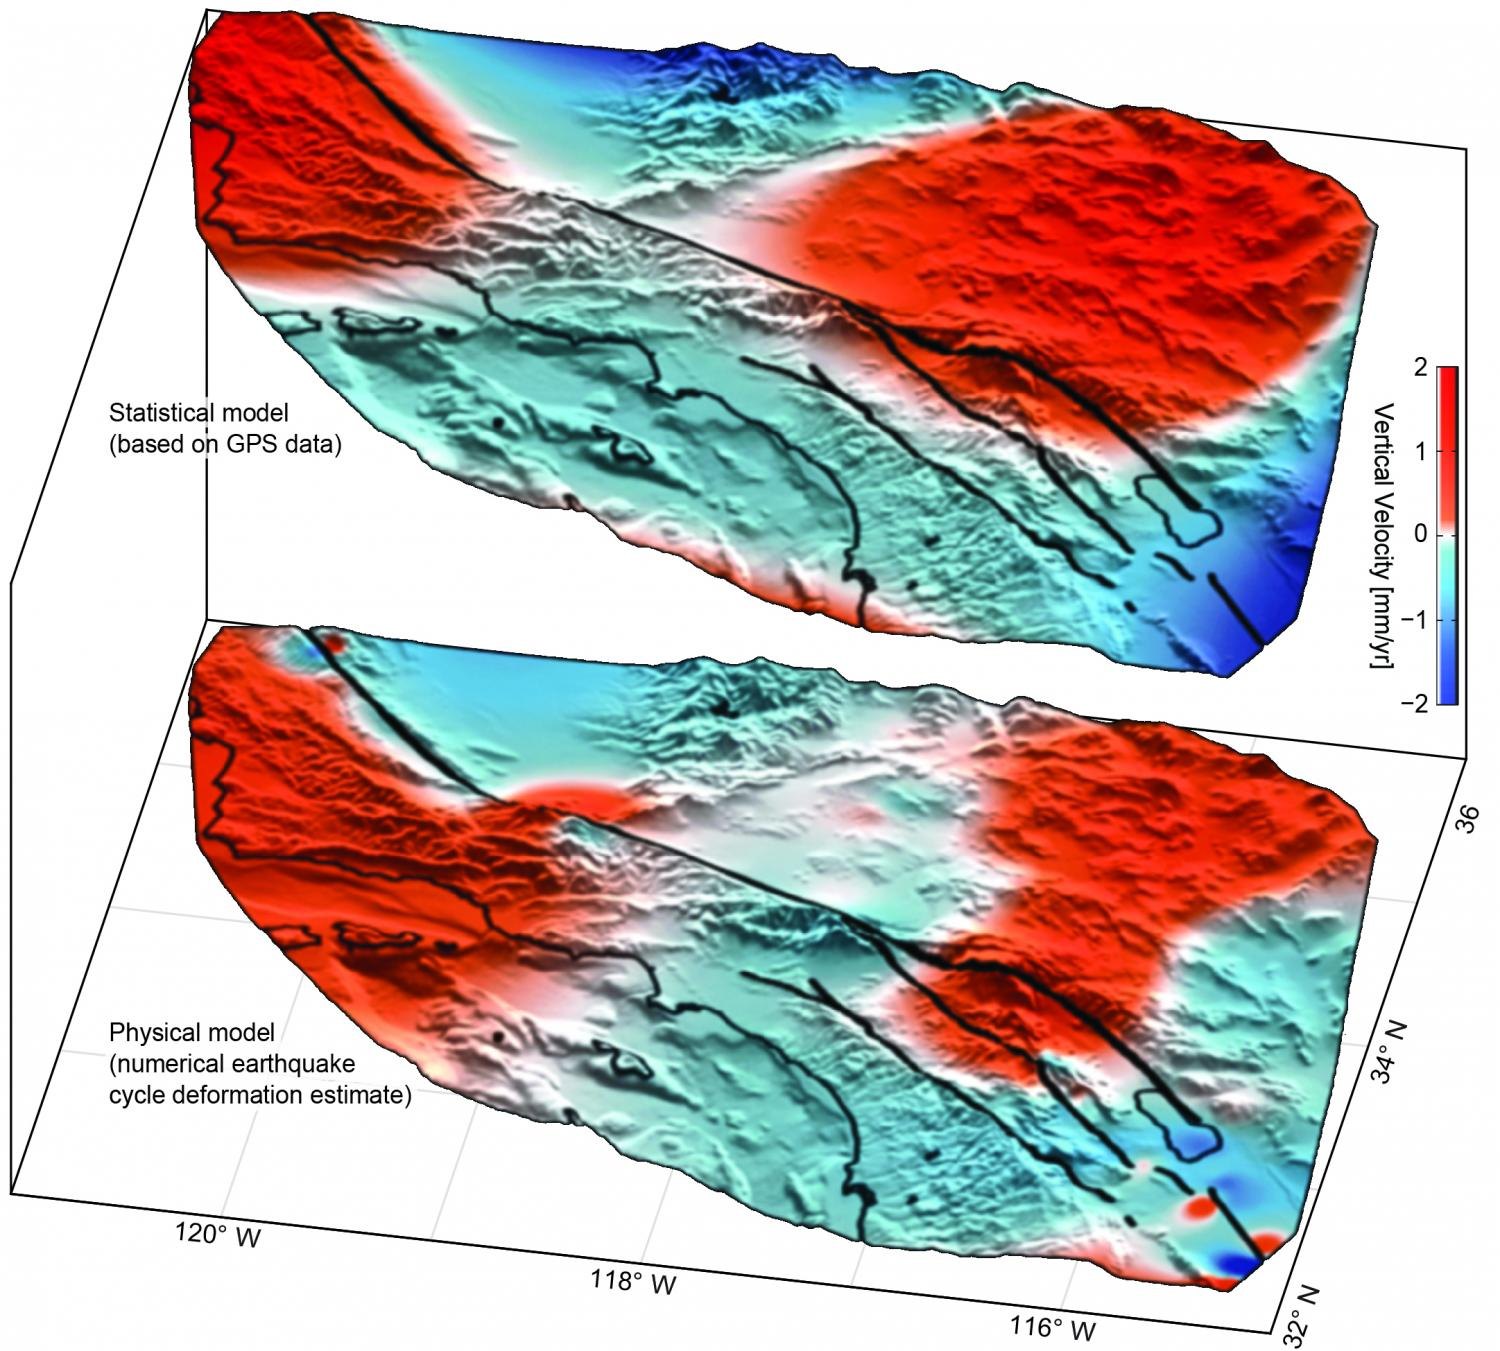 'Large-scale motion' detected near San Andreas Fault